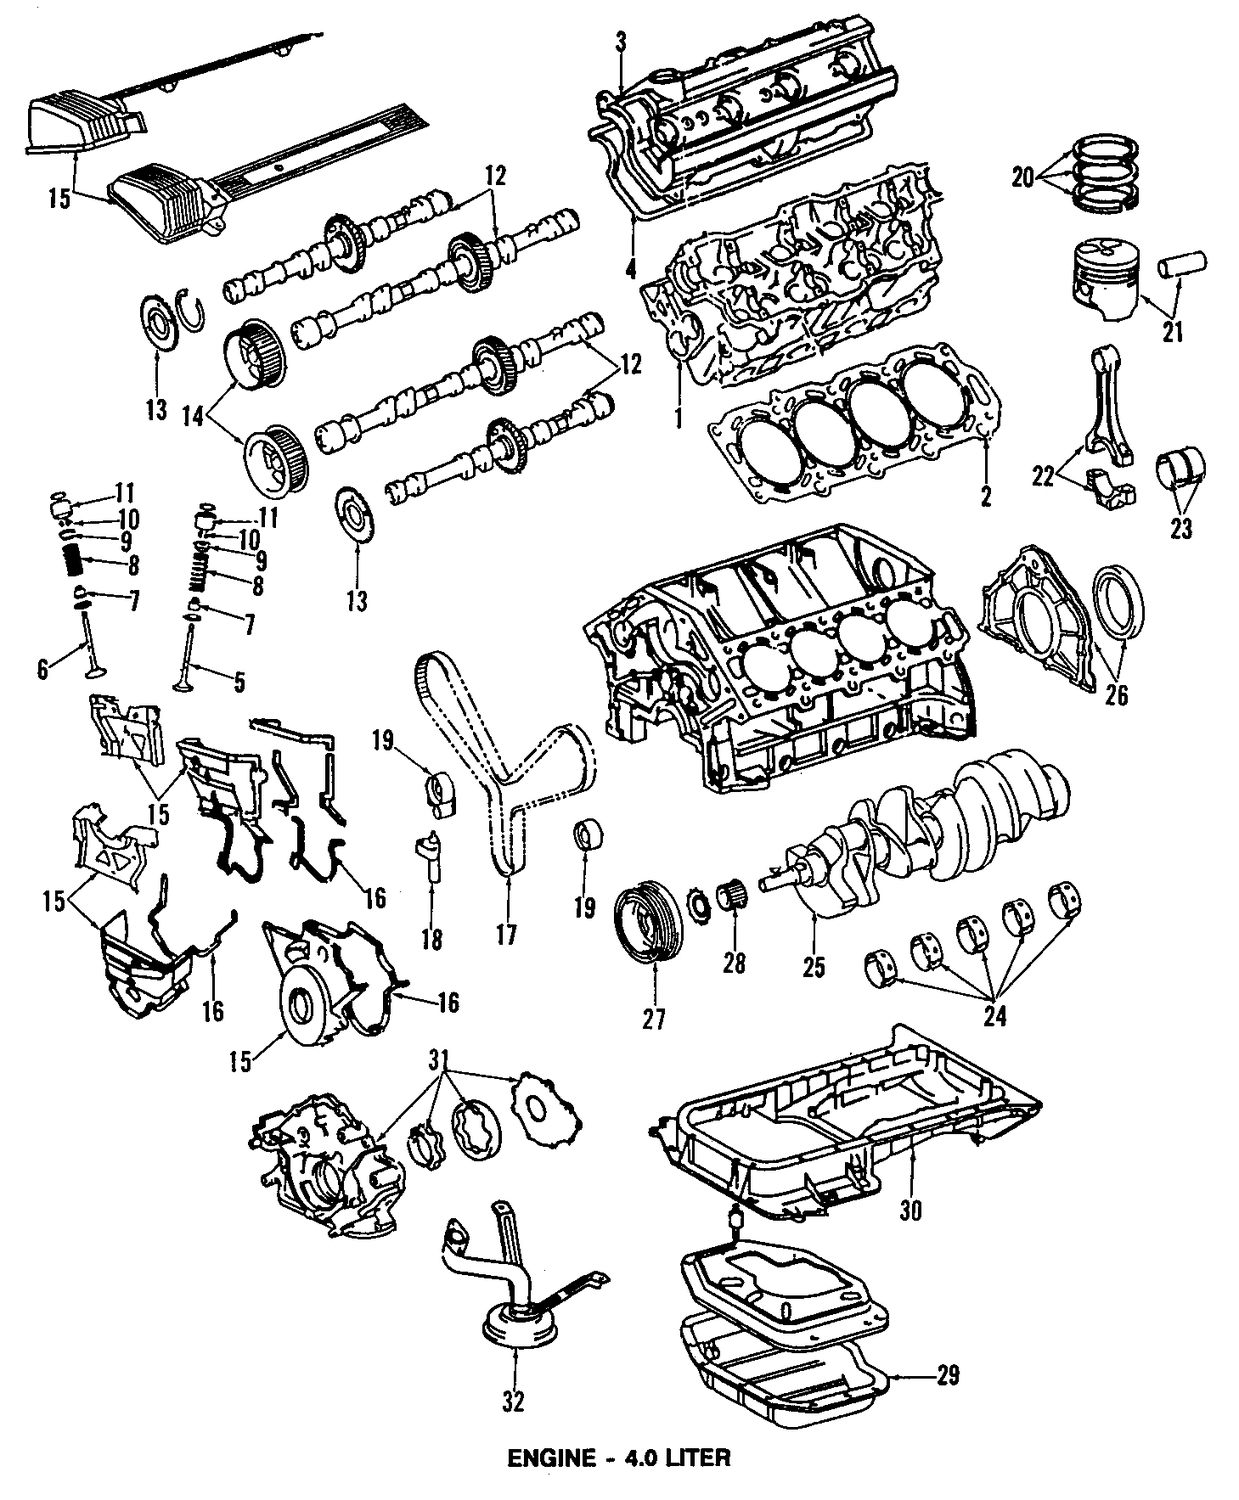 2003 lexus ls430 engine diagram  lexus  auto parts catalog